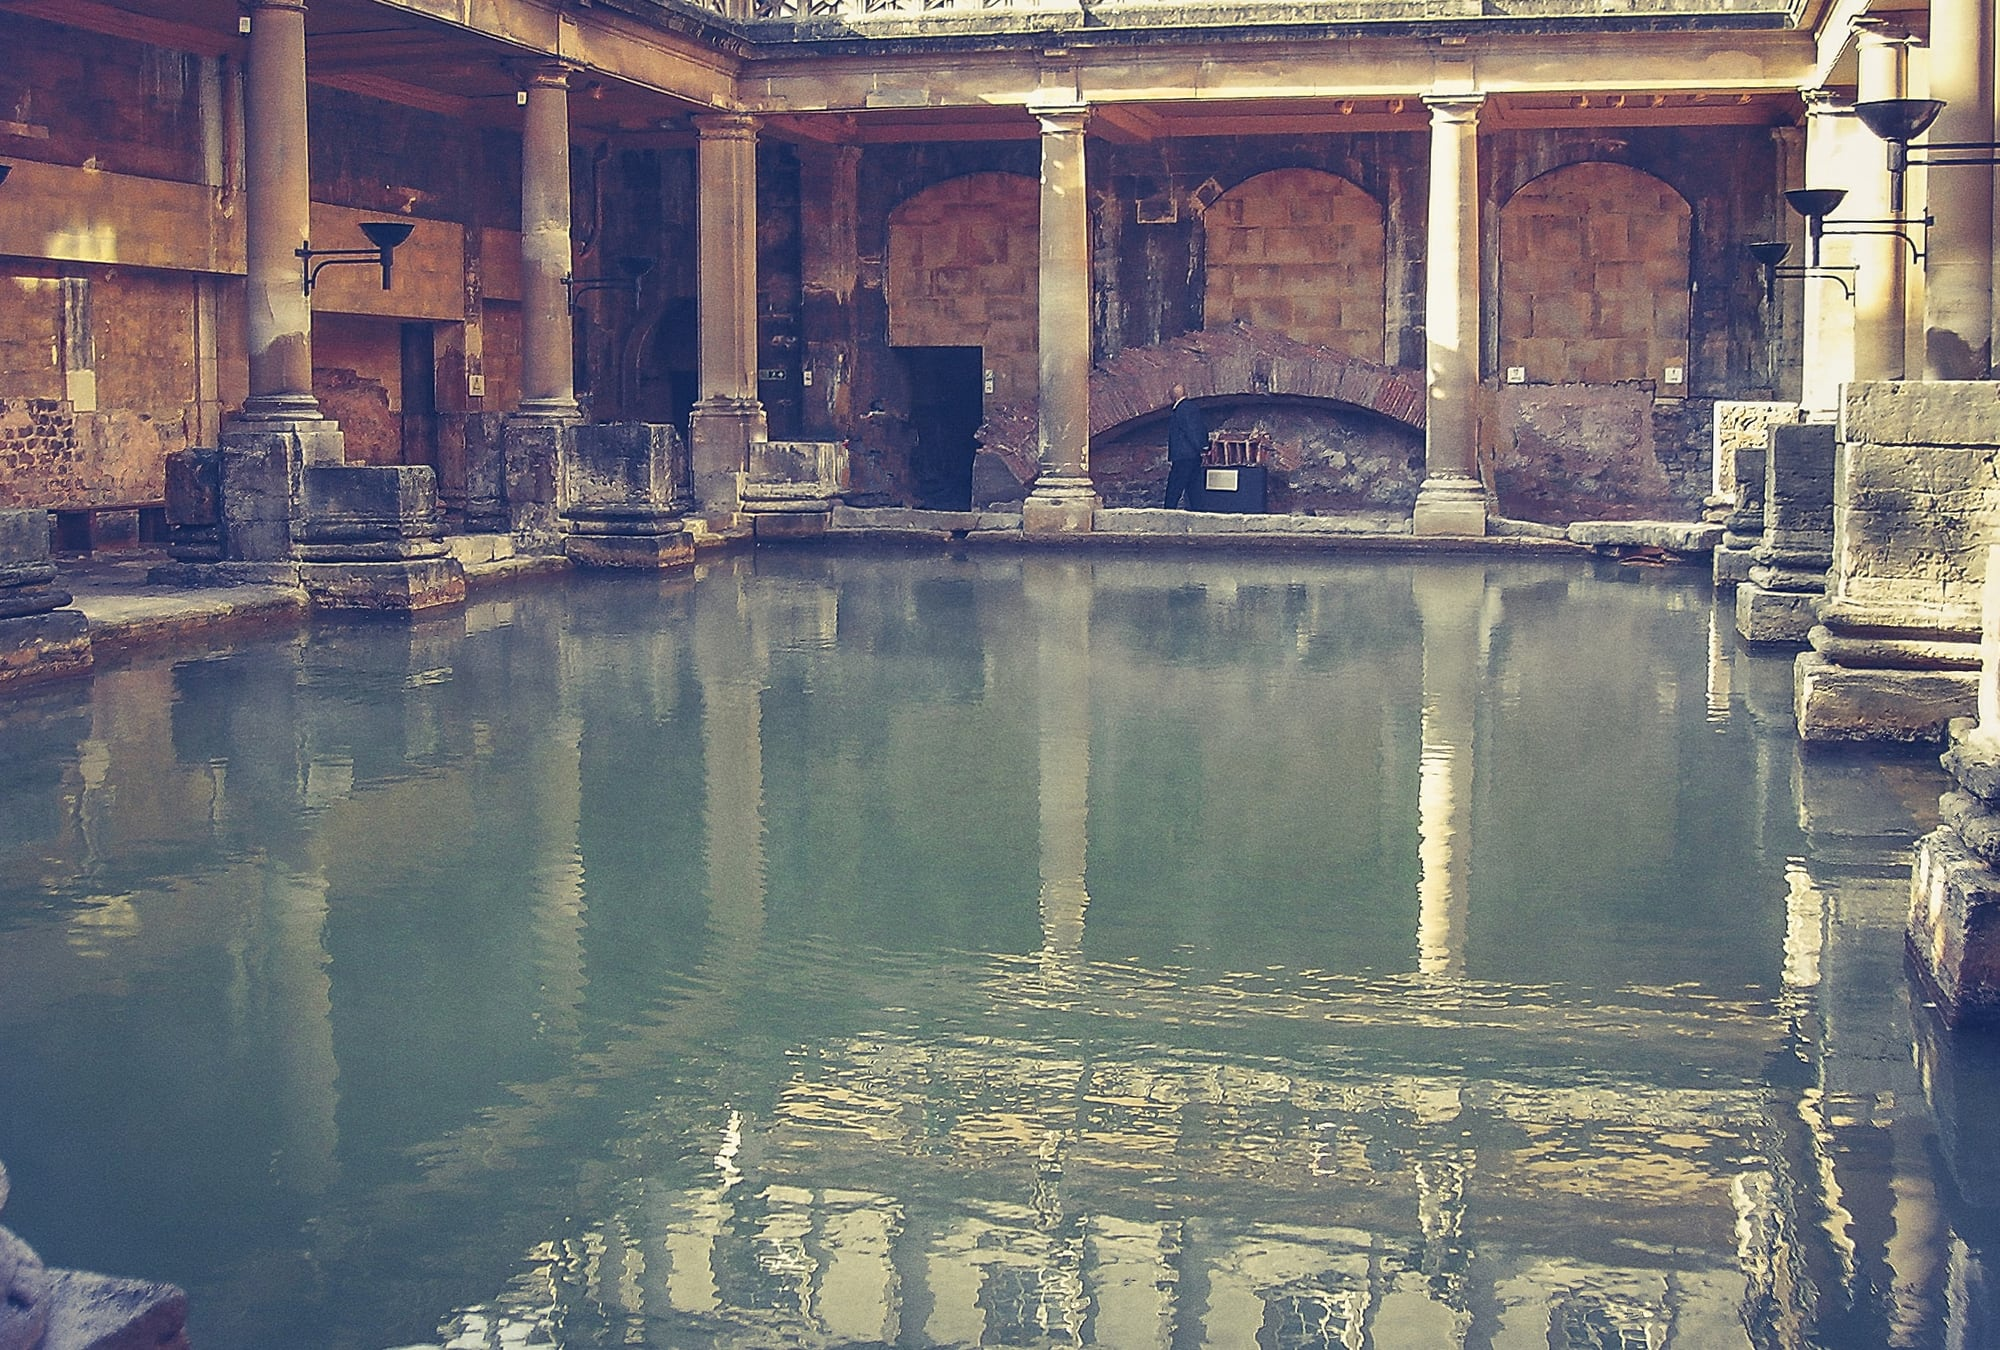 Stay at Dukes Bath and explore the iconic Roman Baths